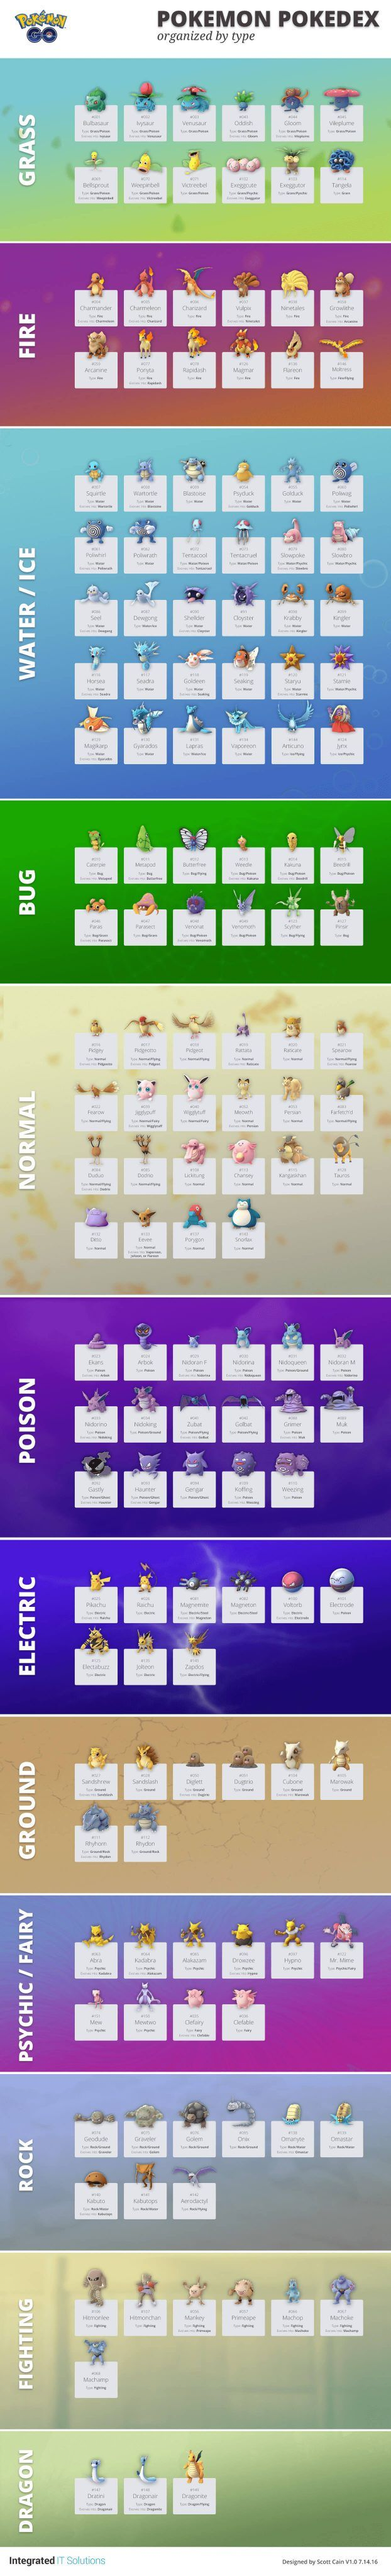 107 Best Grant Images On Pinterest Pokemon Stuff Game And Videogames Power Plant Layout Yellow Go Has Been The Most Popular For Ios In Its Nearly 10 Year History Beginners Can Be A Complicated Proposition So We Provided